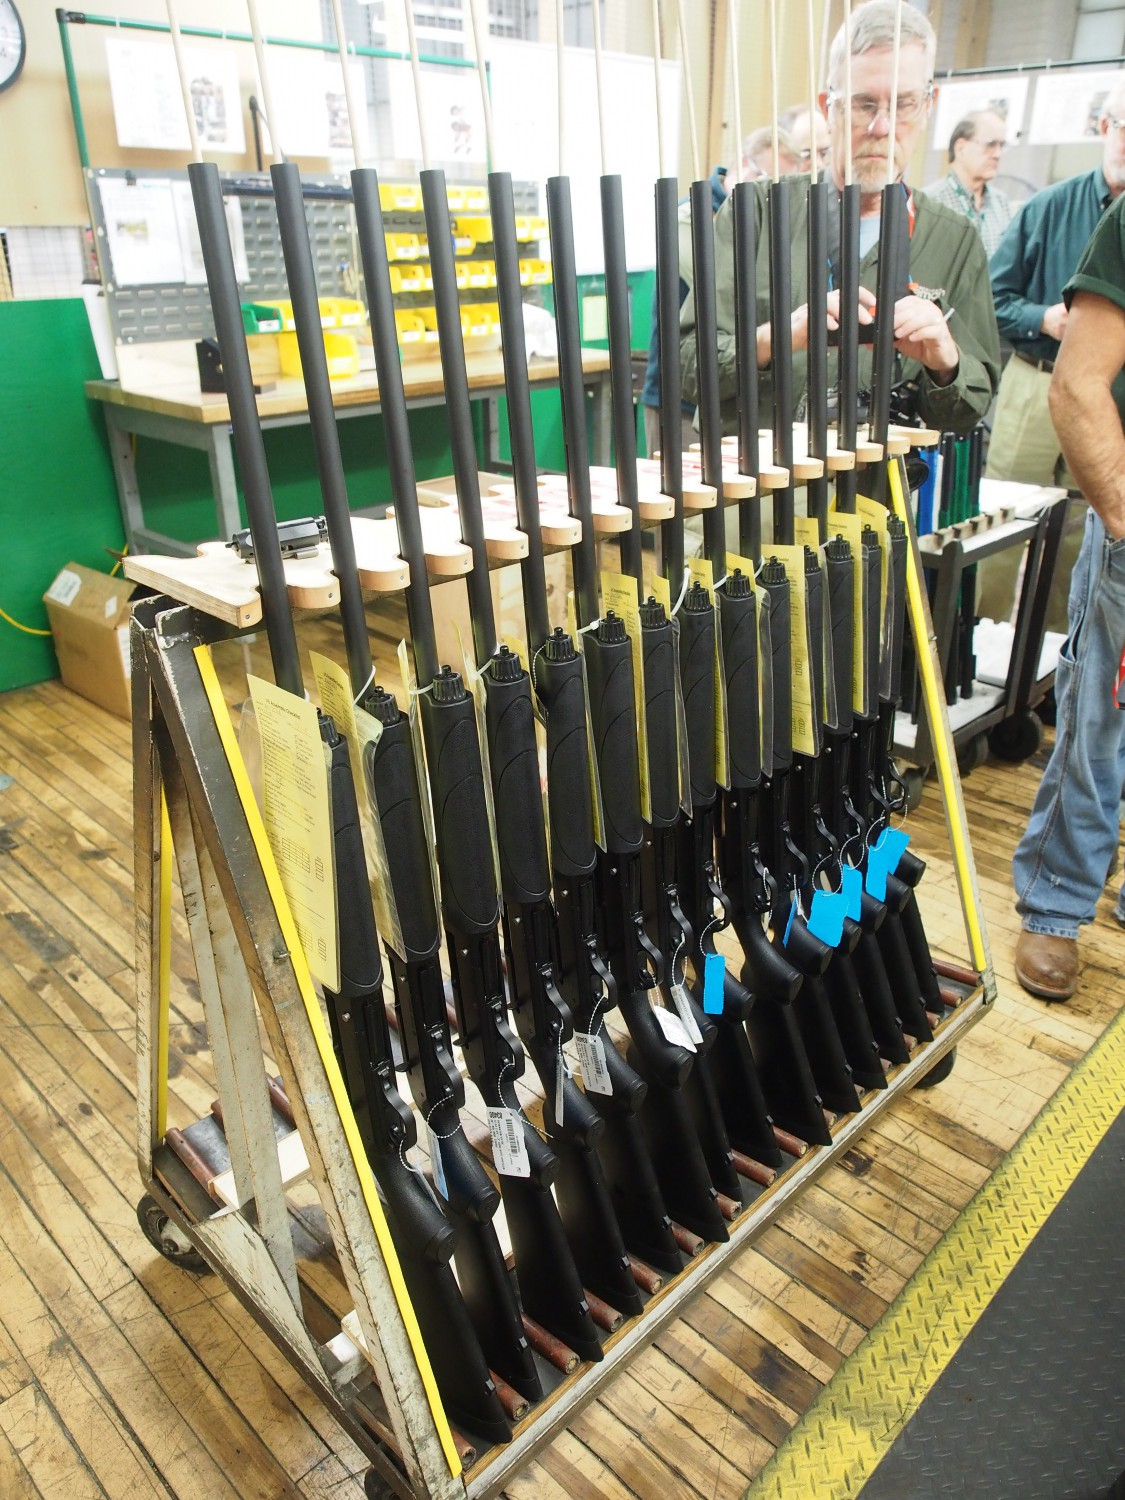 Completed shotguns in the rack waiting for inspection and packaging.